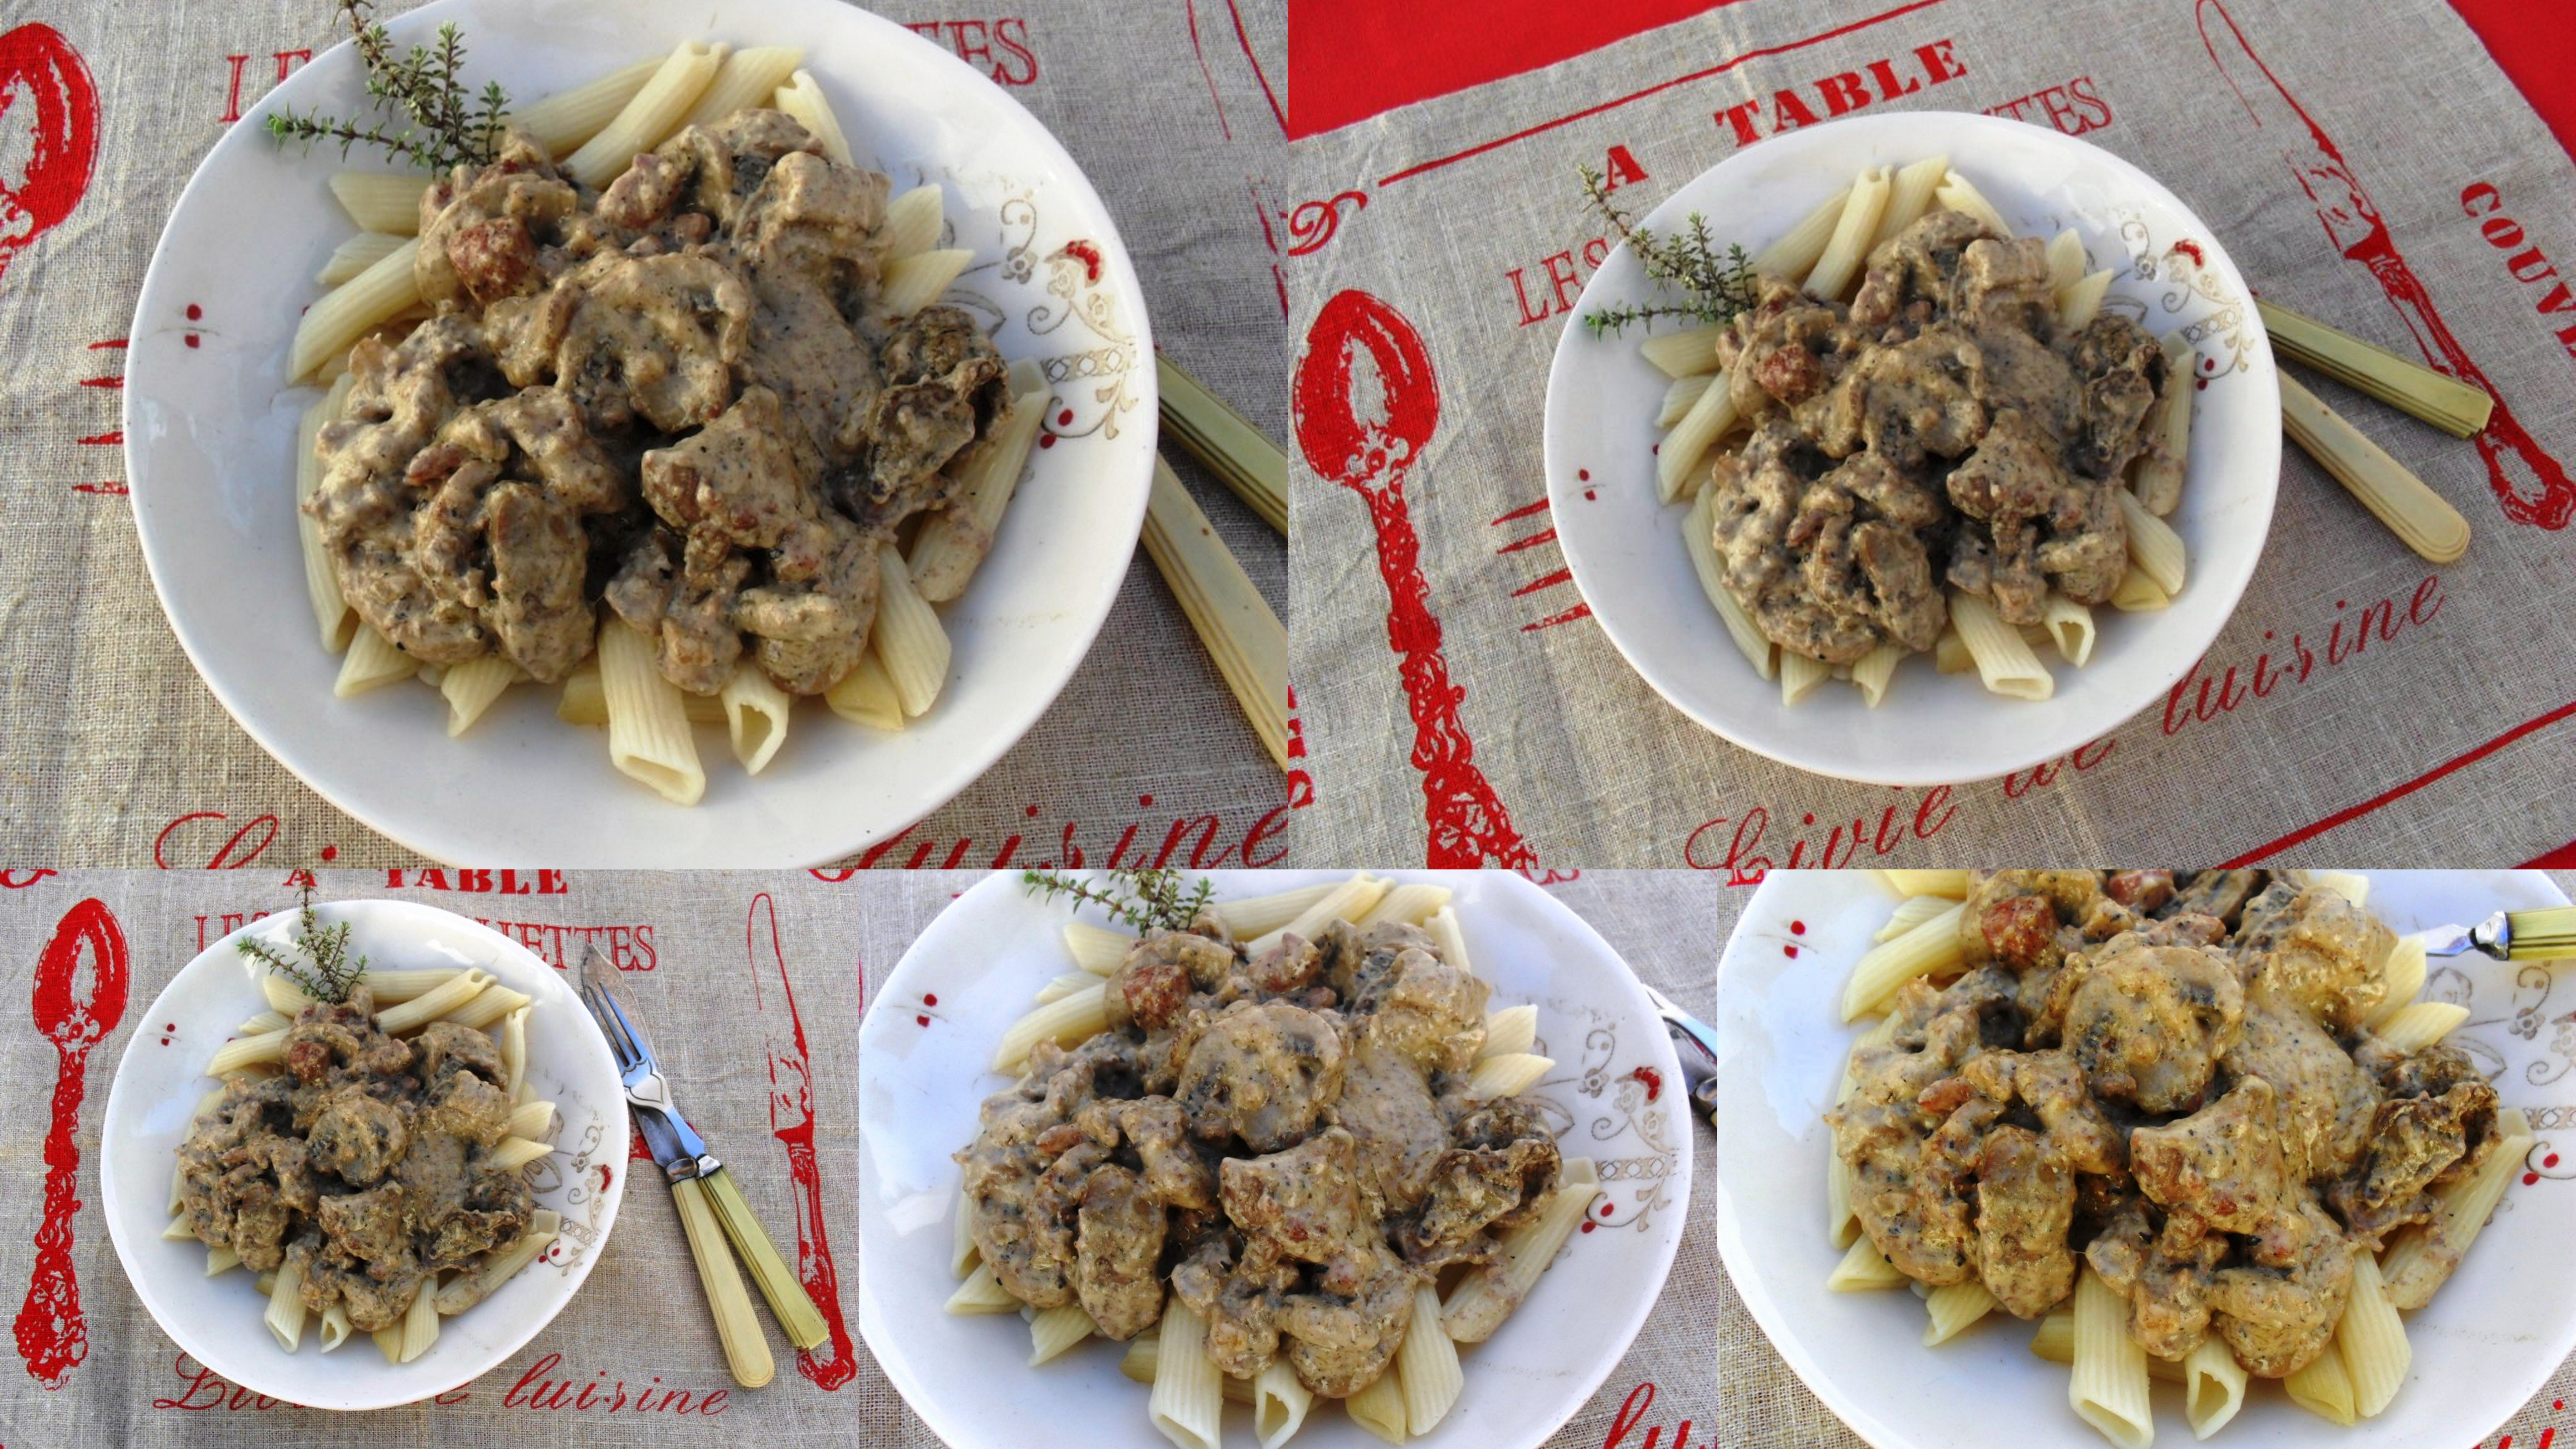 Chicken livers on pasta recipe